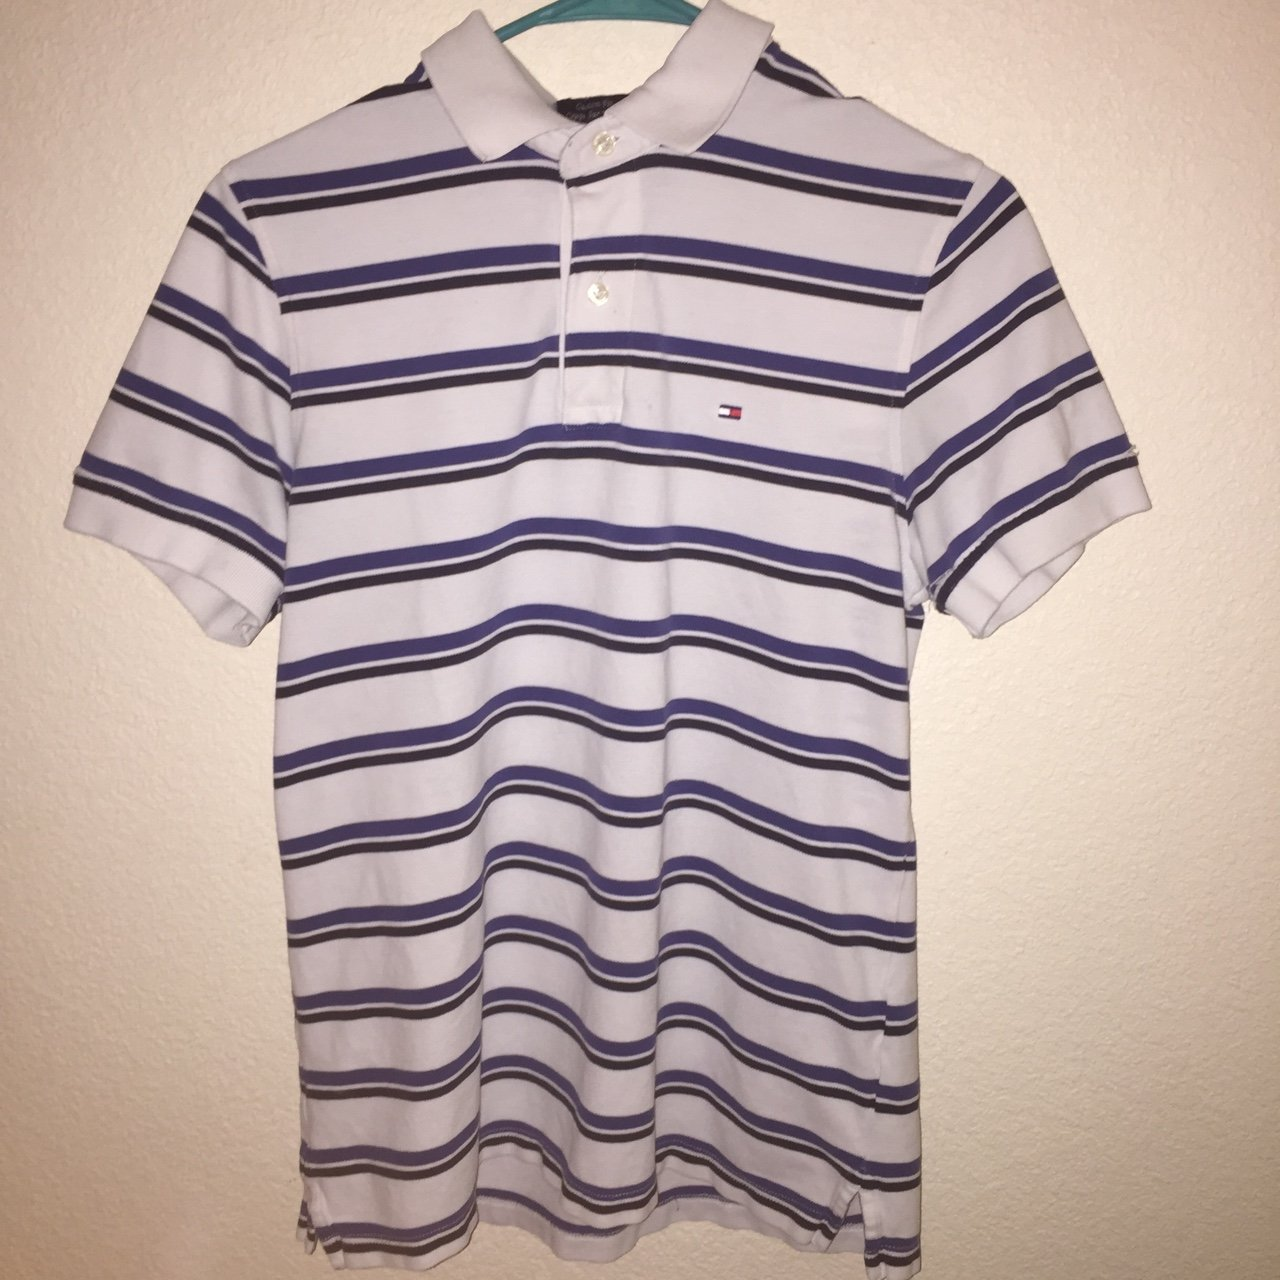 8a0ed2708b4 Blue and Black Striped Tommy